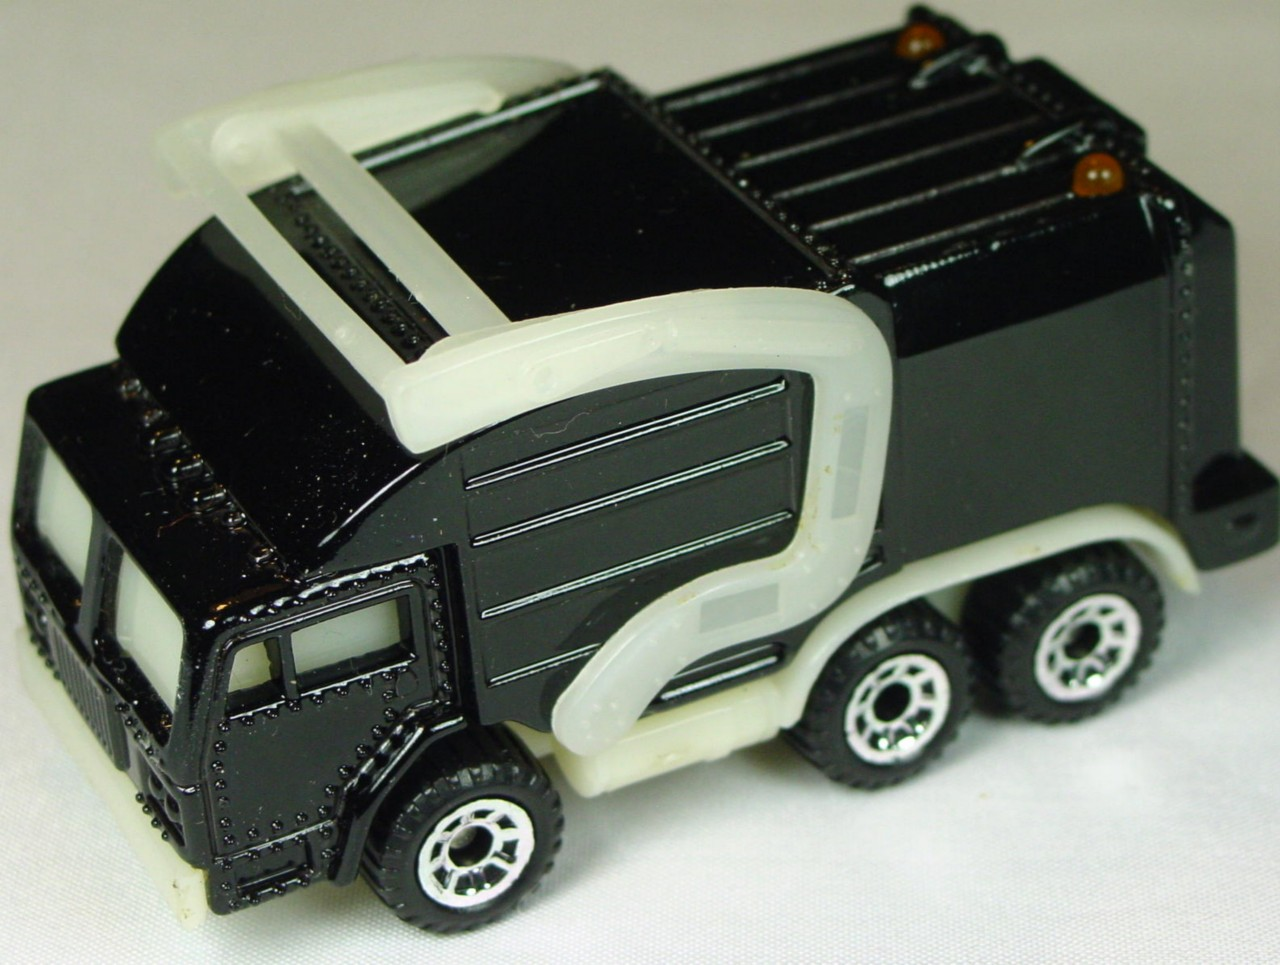 Pre-production 04 - Real Talkin Garbagetruck Black unp lift trans base made in China